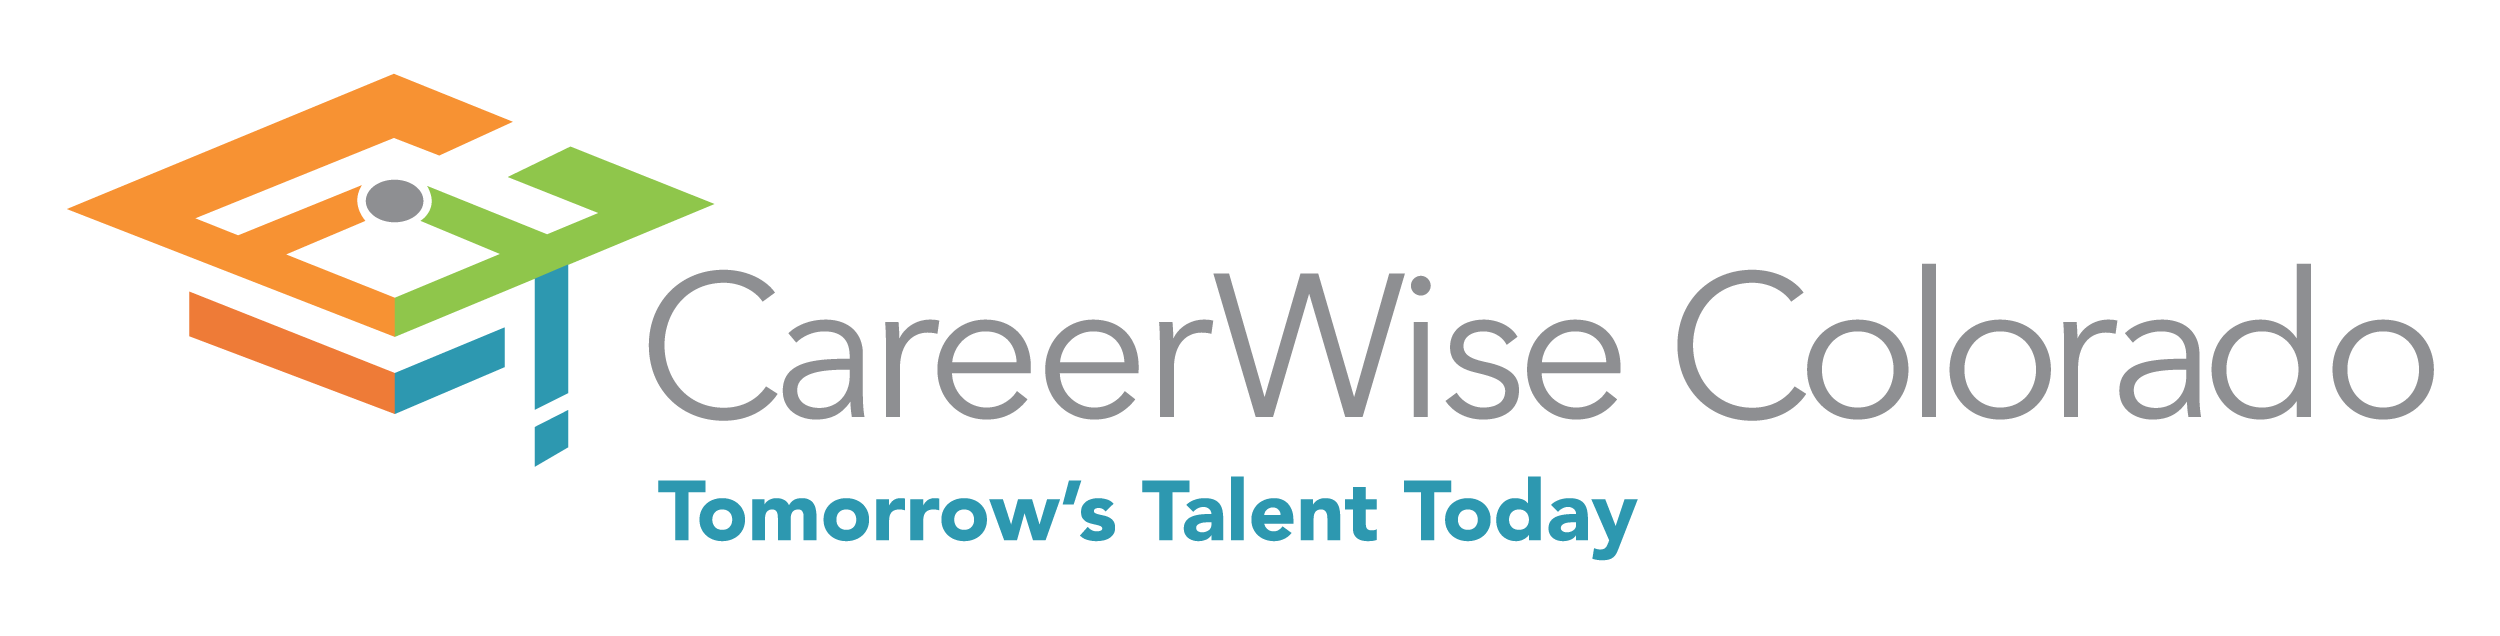 CareerWise-Couragion-Partnership-Apprenticeships.png